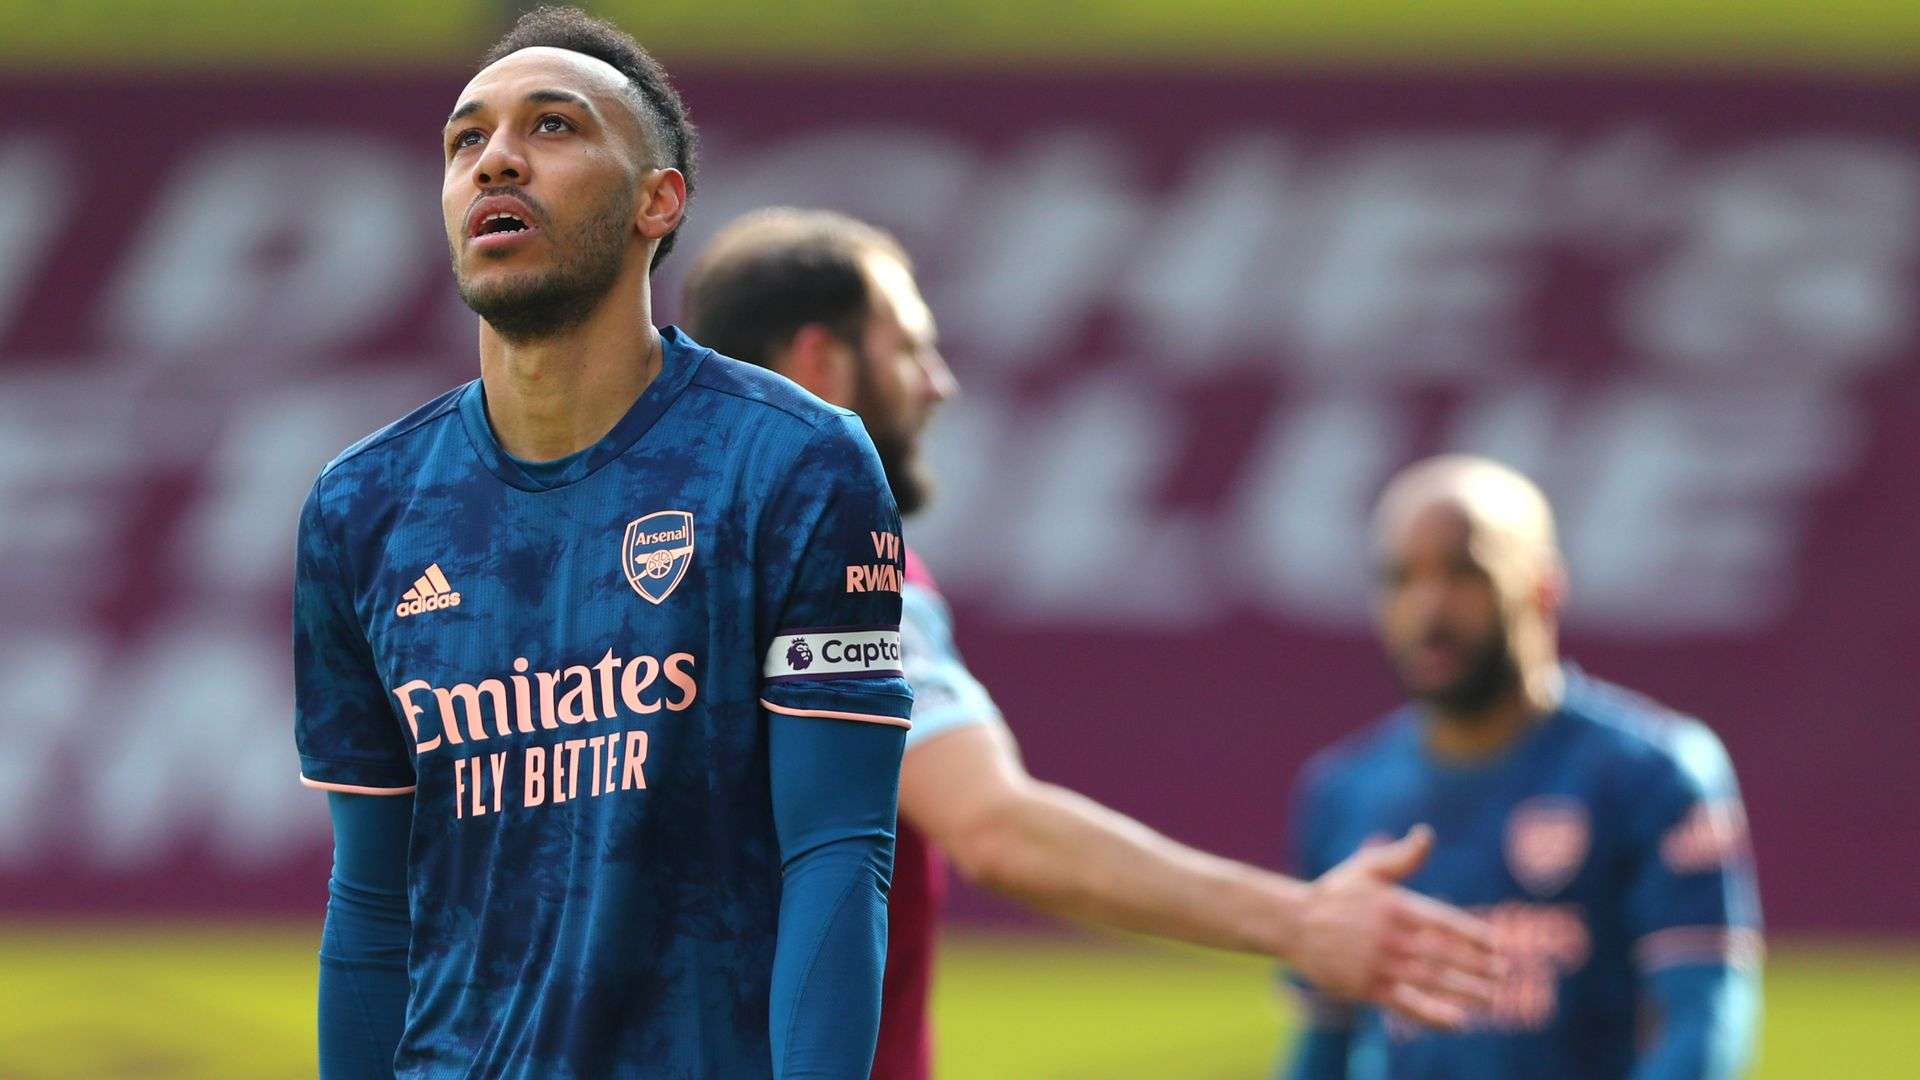 Hits & misses: Arsenal to prioritise Europa now?